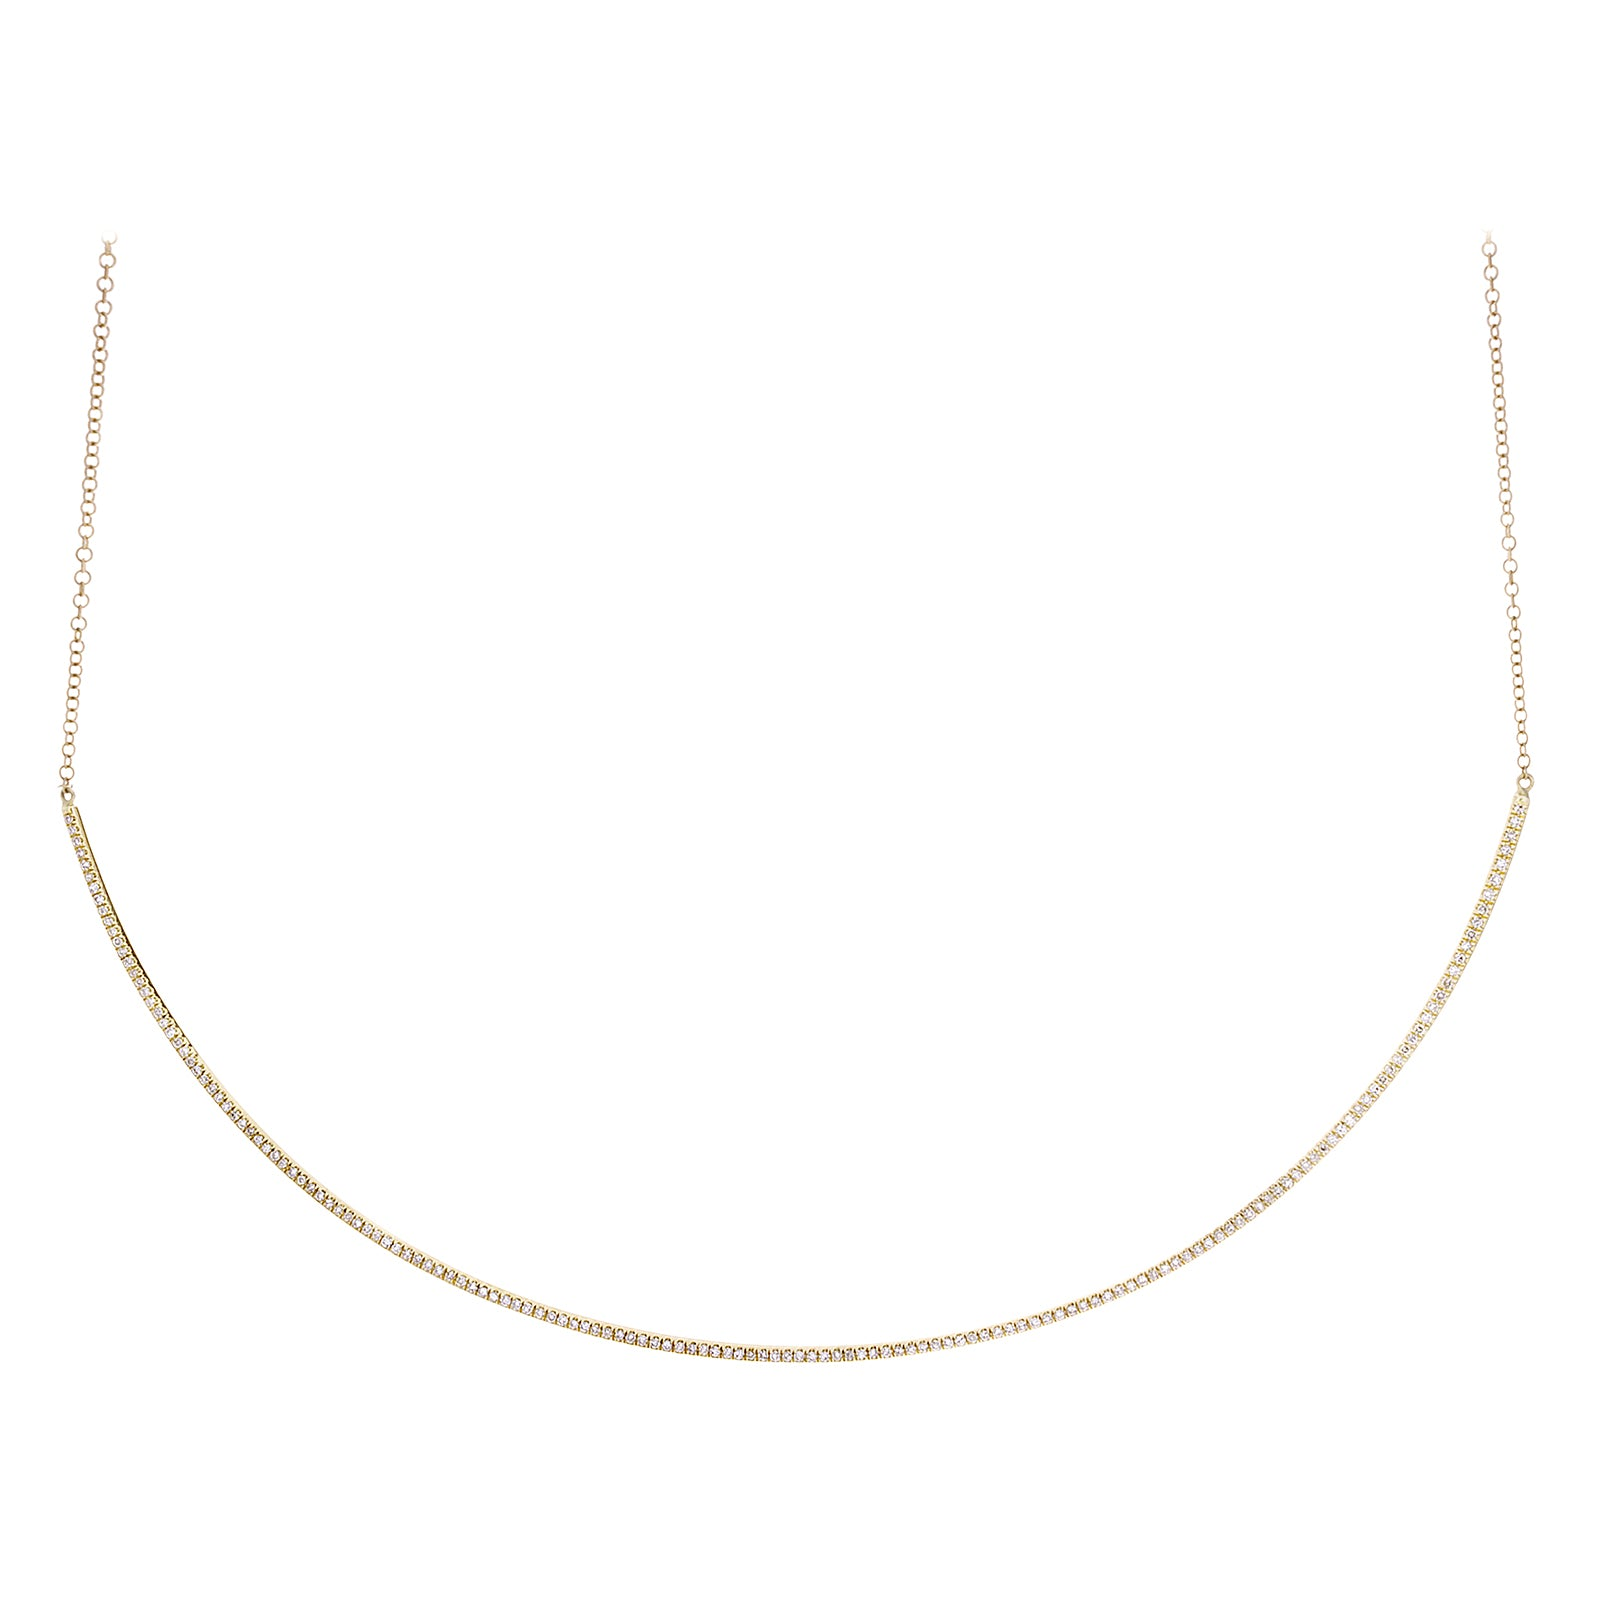 Diamonds & 14K Yellow Gold Curved Bar Necklace - SOLD/CAN BE SPECIAL ORDERED WITH 4-6 WEEKS DELIVERY TIME FRAME